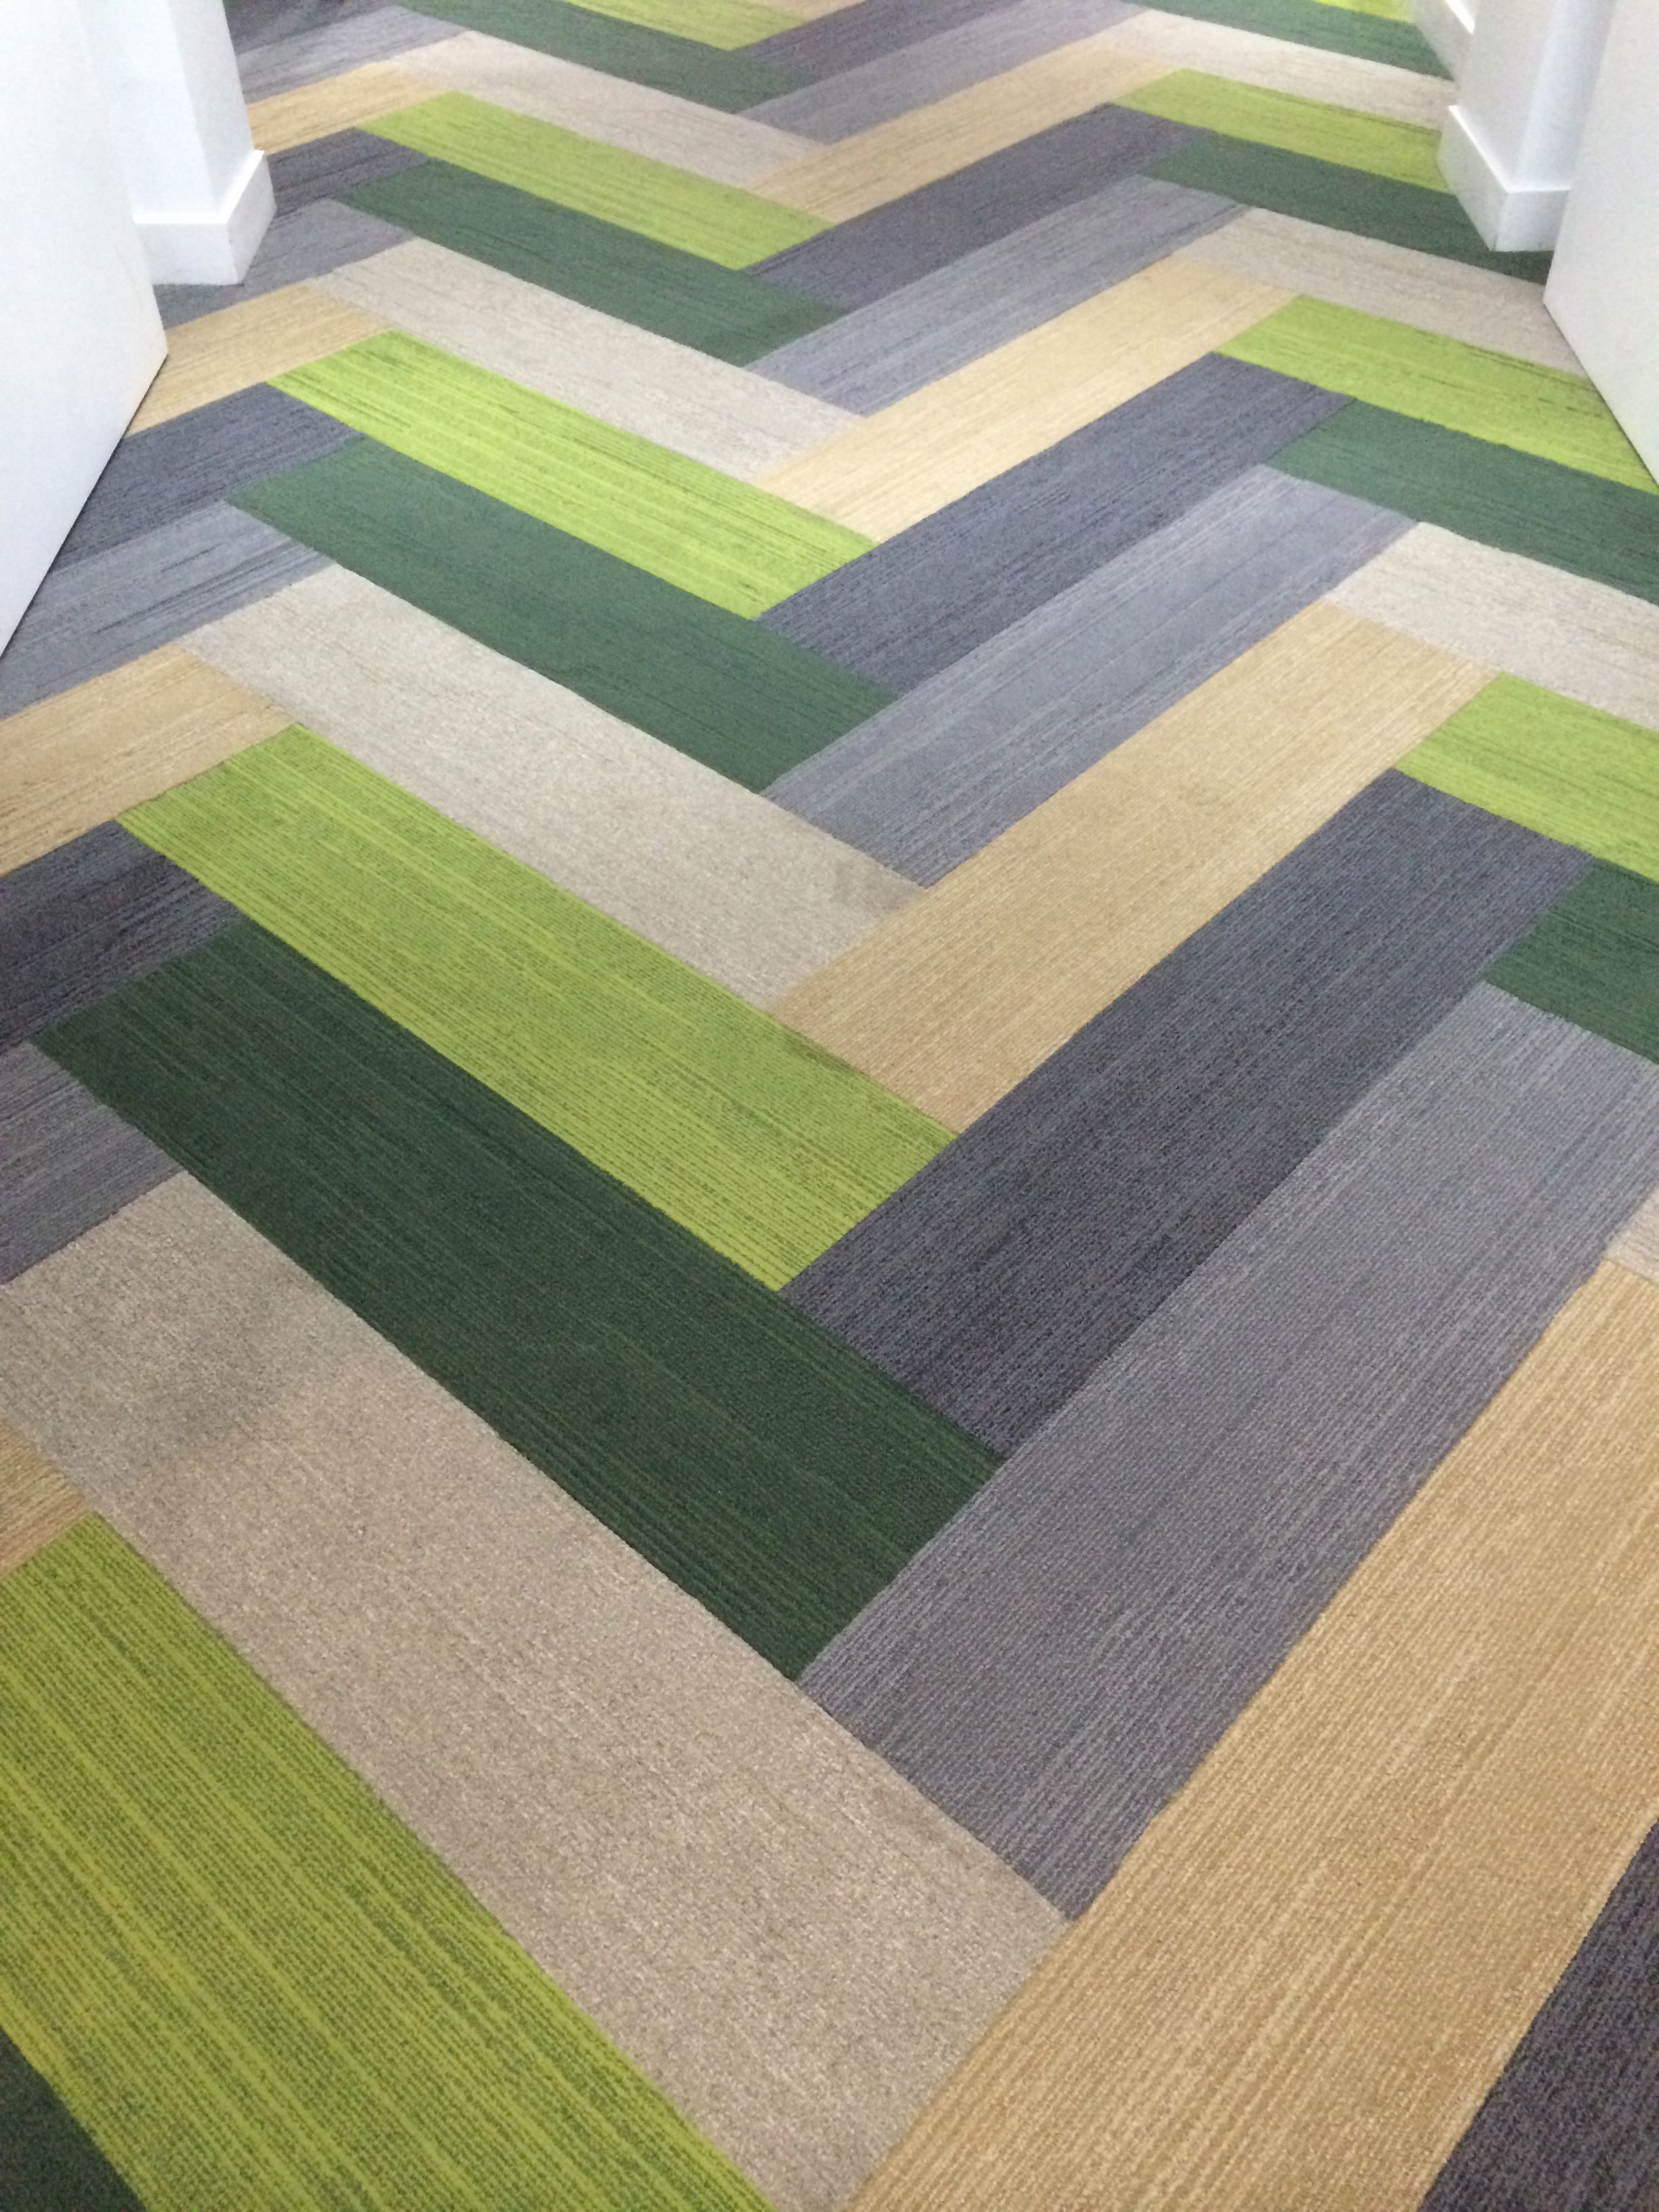 Carpet For My Huuuge Closet Like The Design But Different Colors